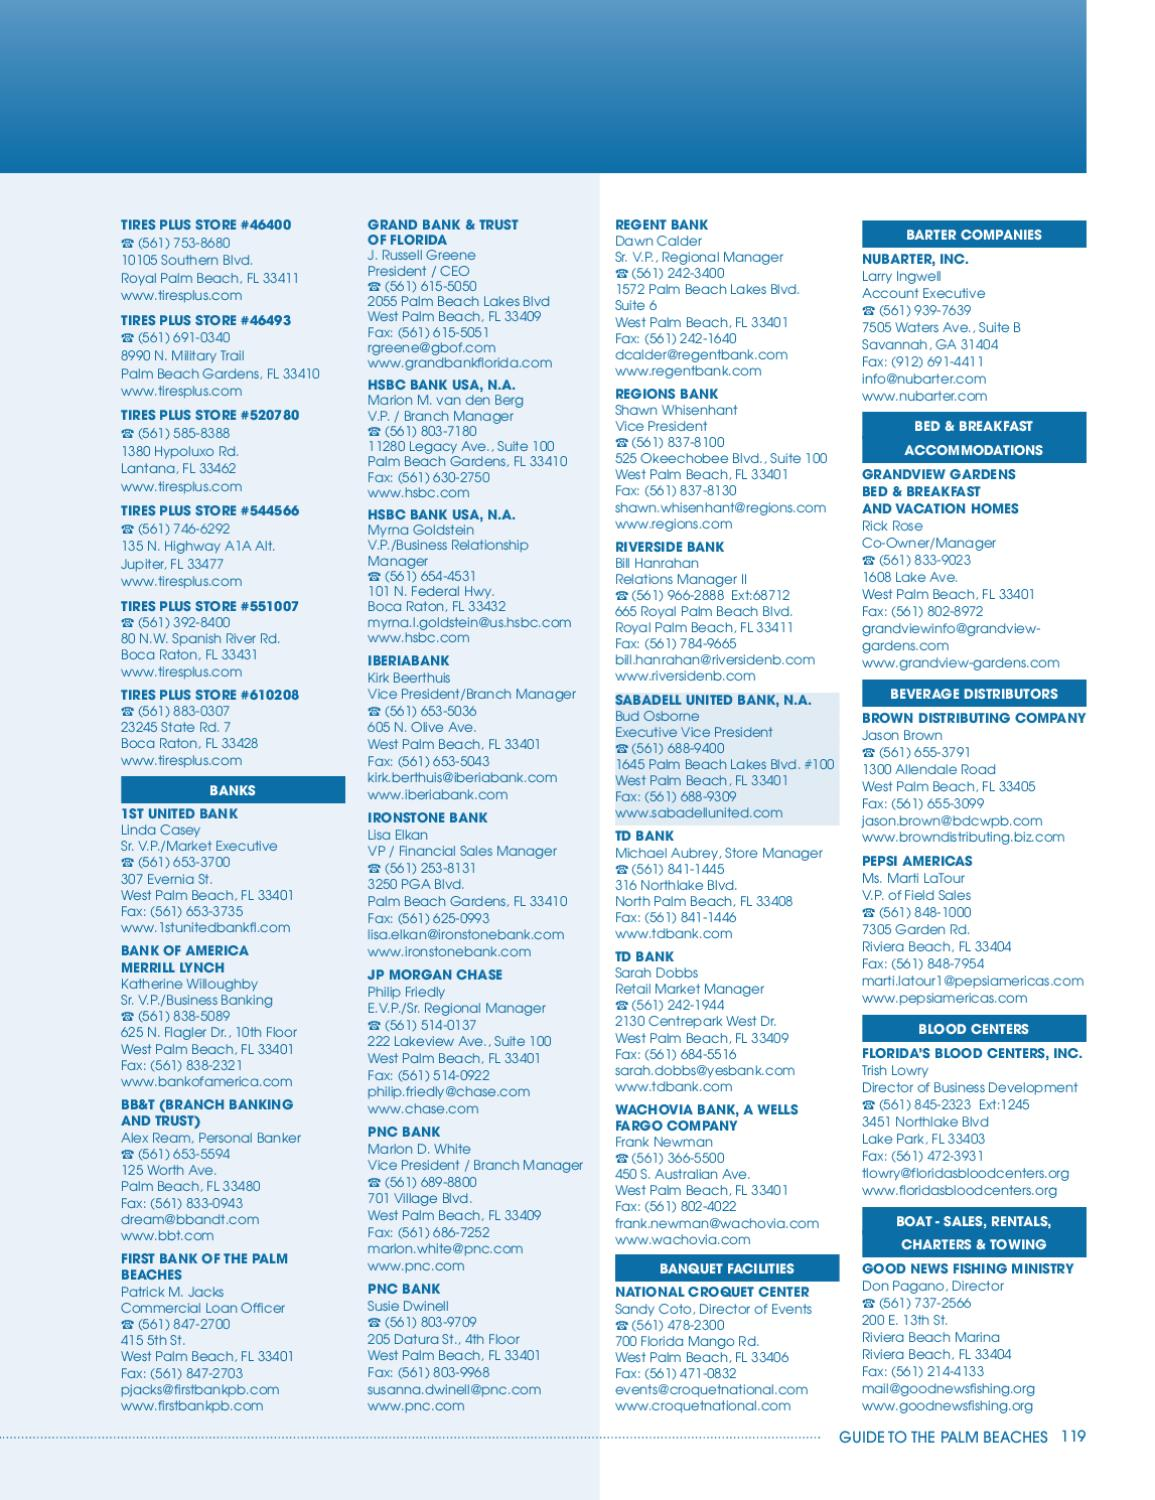 2011 Guide to the Palm Beaches by Chamber of Commerce of the